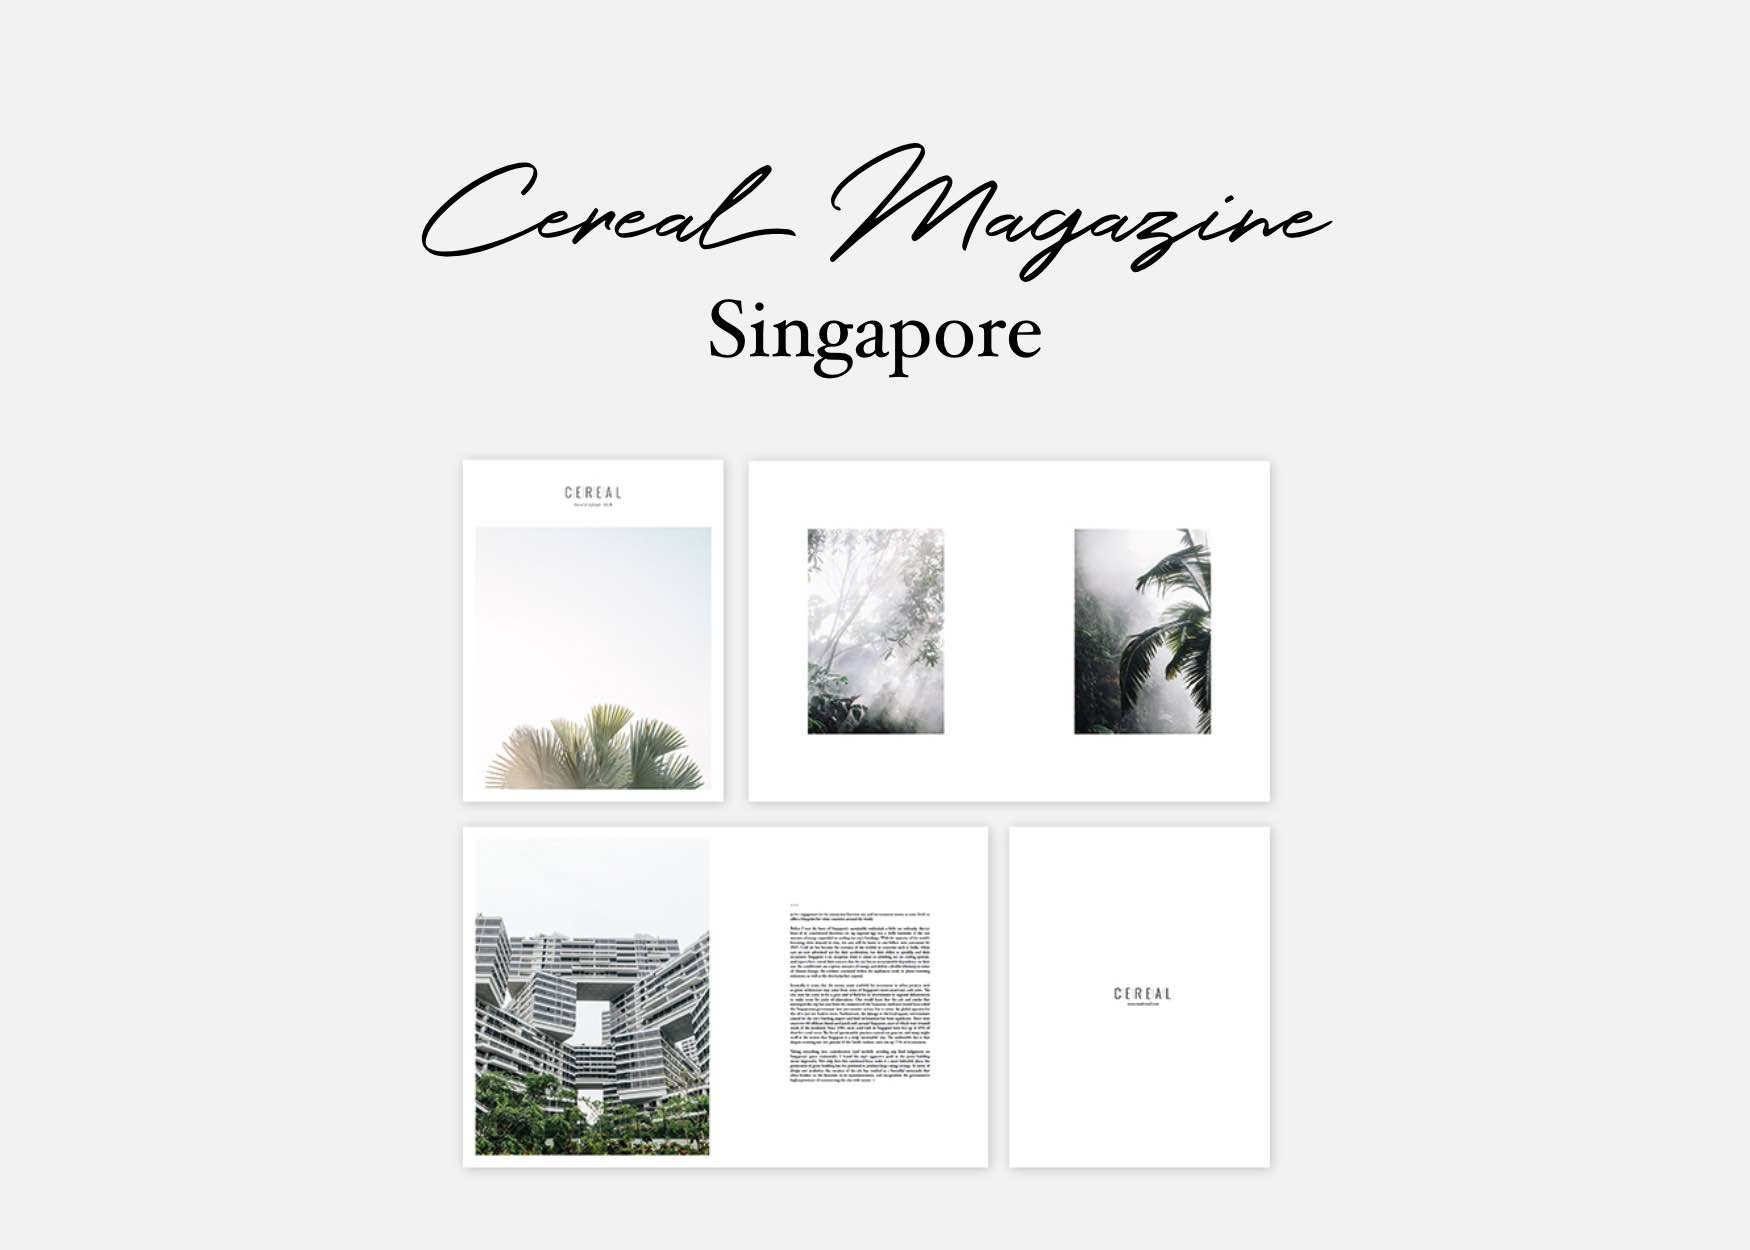 stylodeco.com-blog-cereal-magazine-singapore-luxurious-nature-garden-city.1.jpg